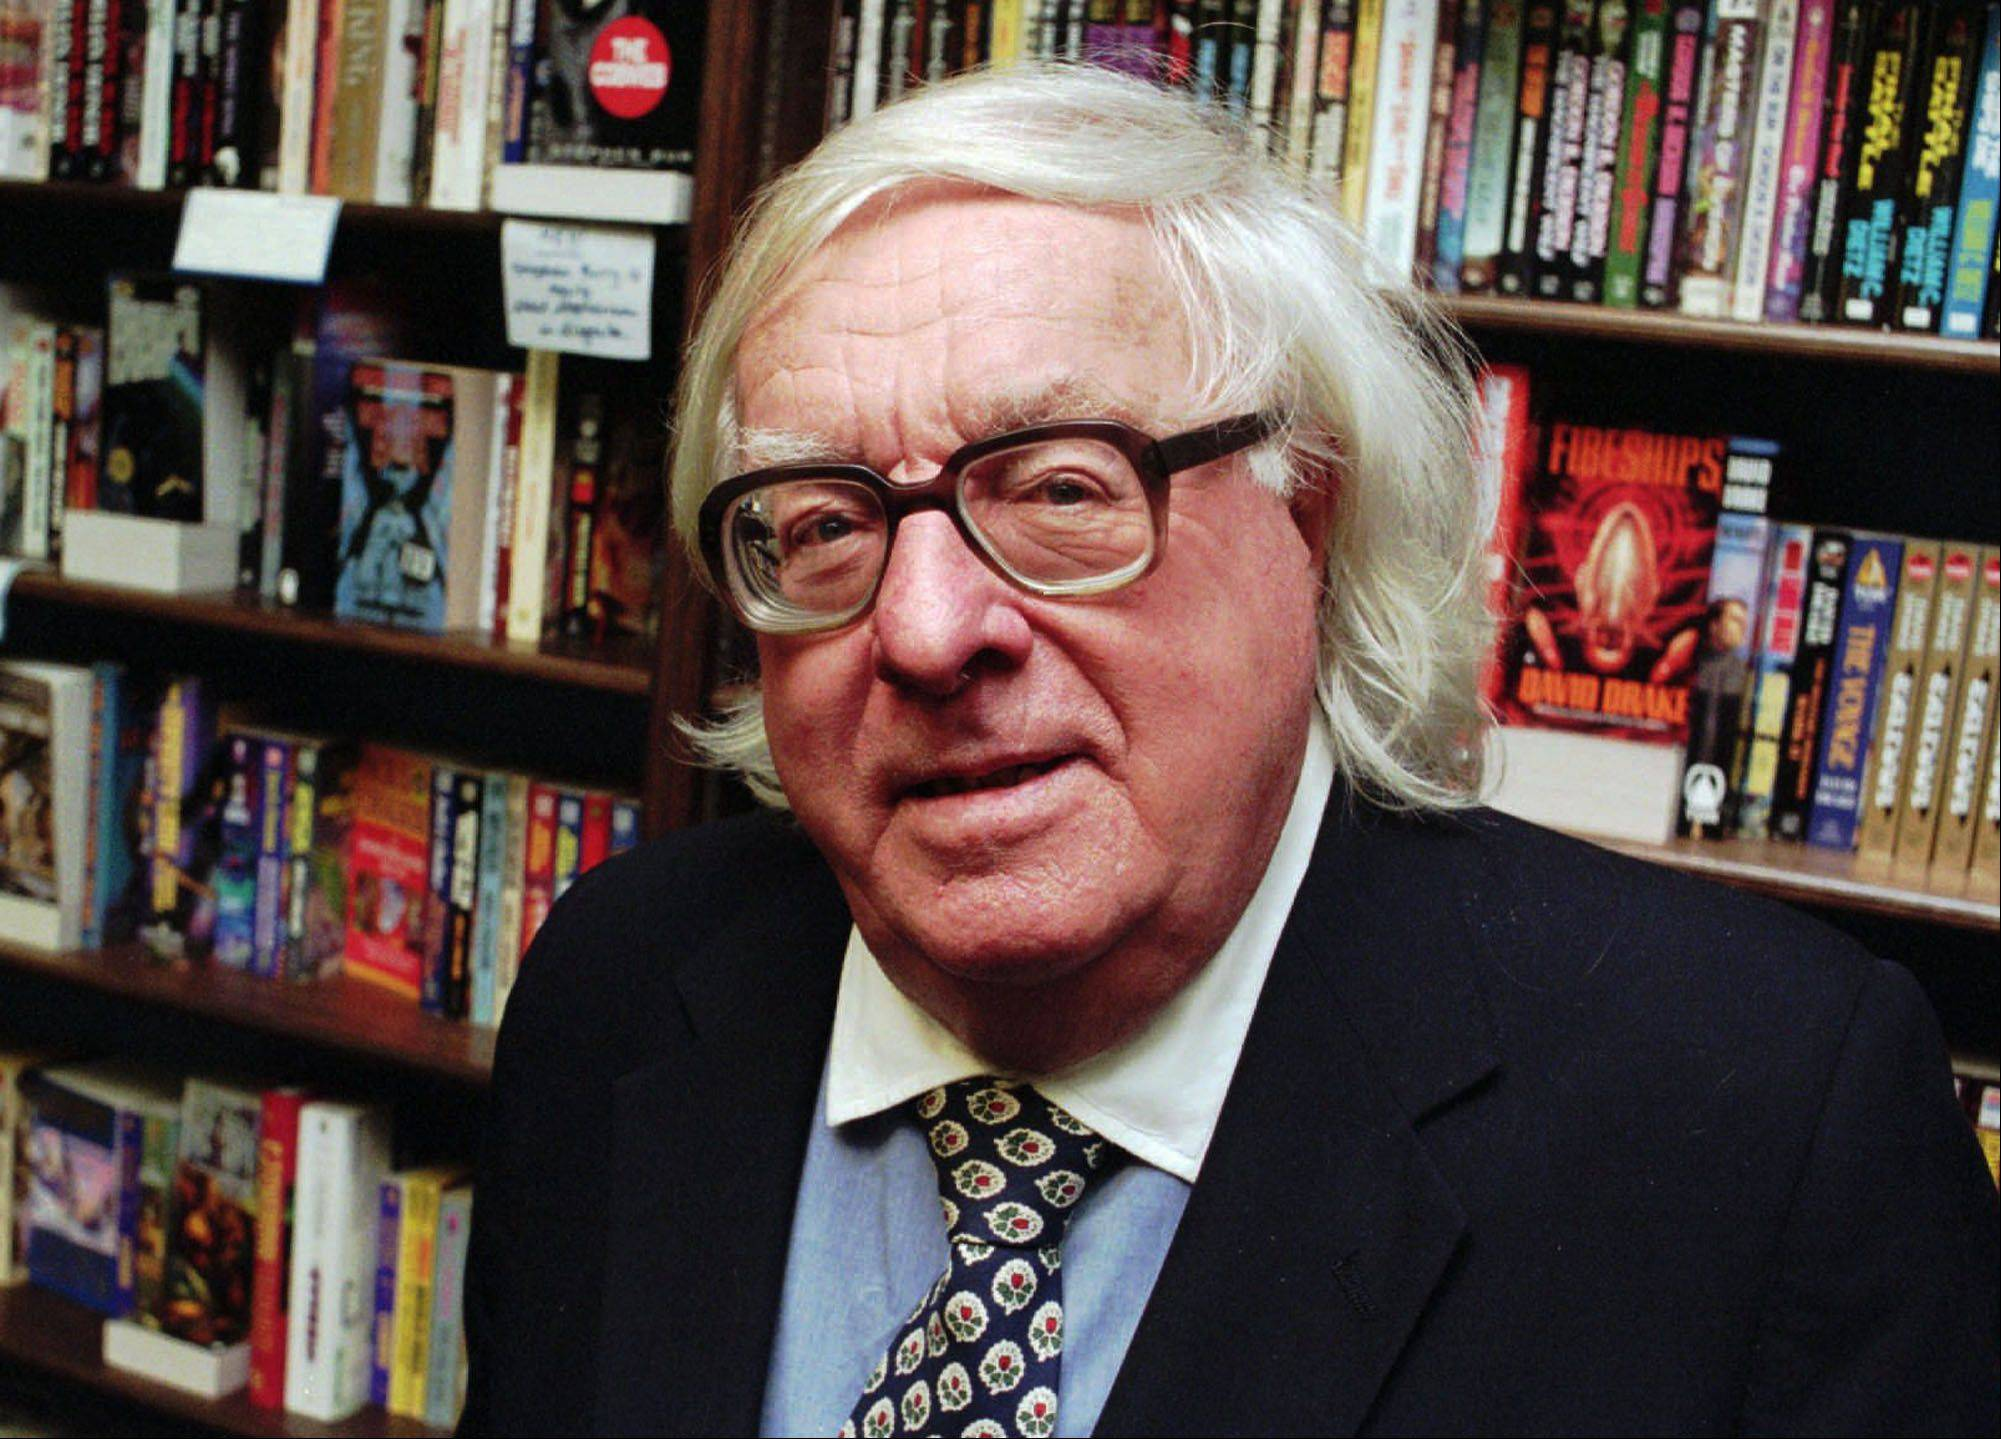 Author Ray Bradbury, a native of Waukegan, was investigated by the FBI in the 1950s and 1960s.